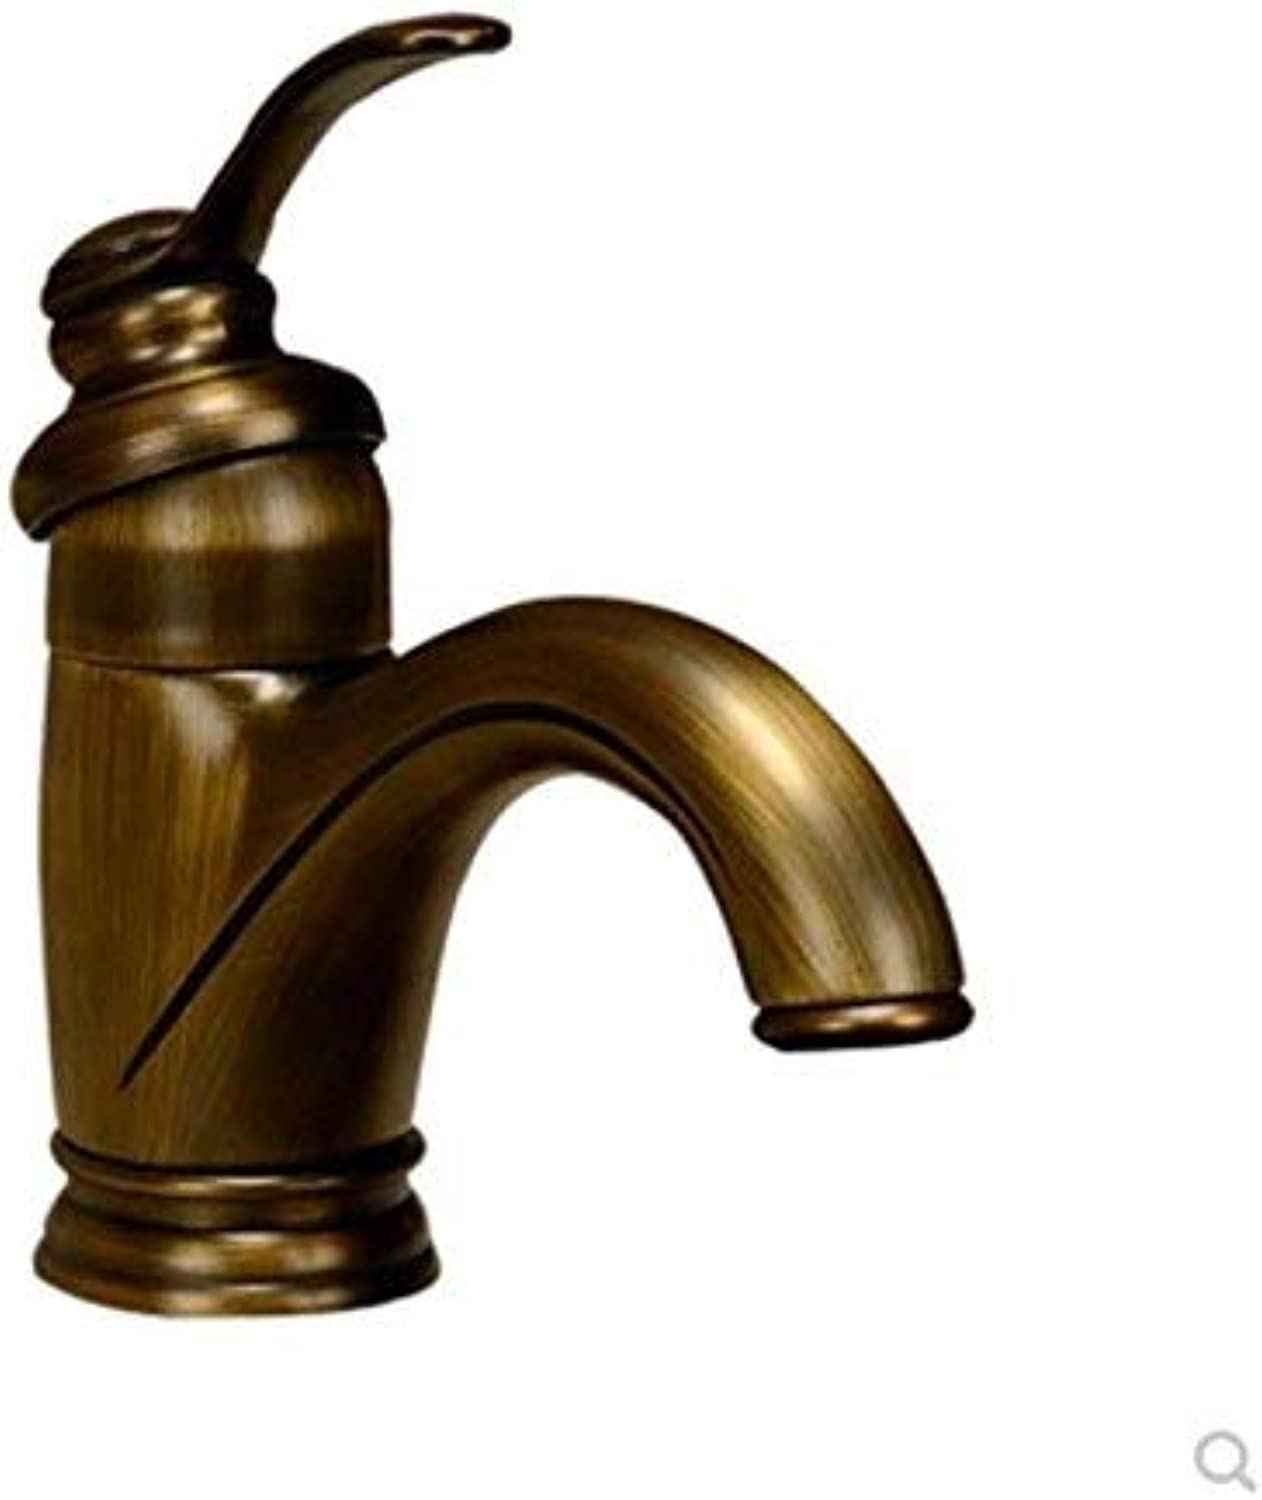 Oudan European Classical Antique Faucet Basin Faucet Hot and Cold All Copper Single Single Hole Ceramic Disc Spool with Hose (color   -, Size   -)